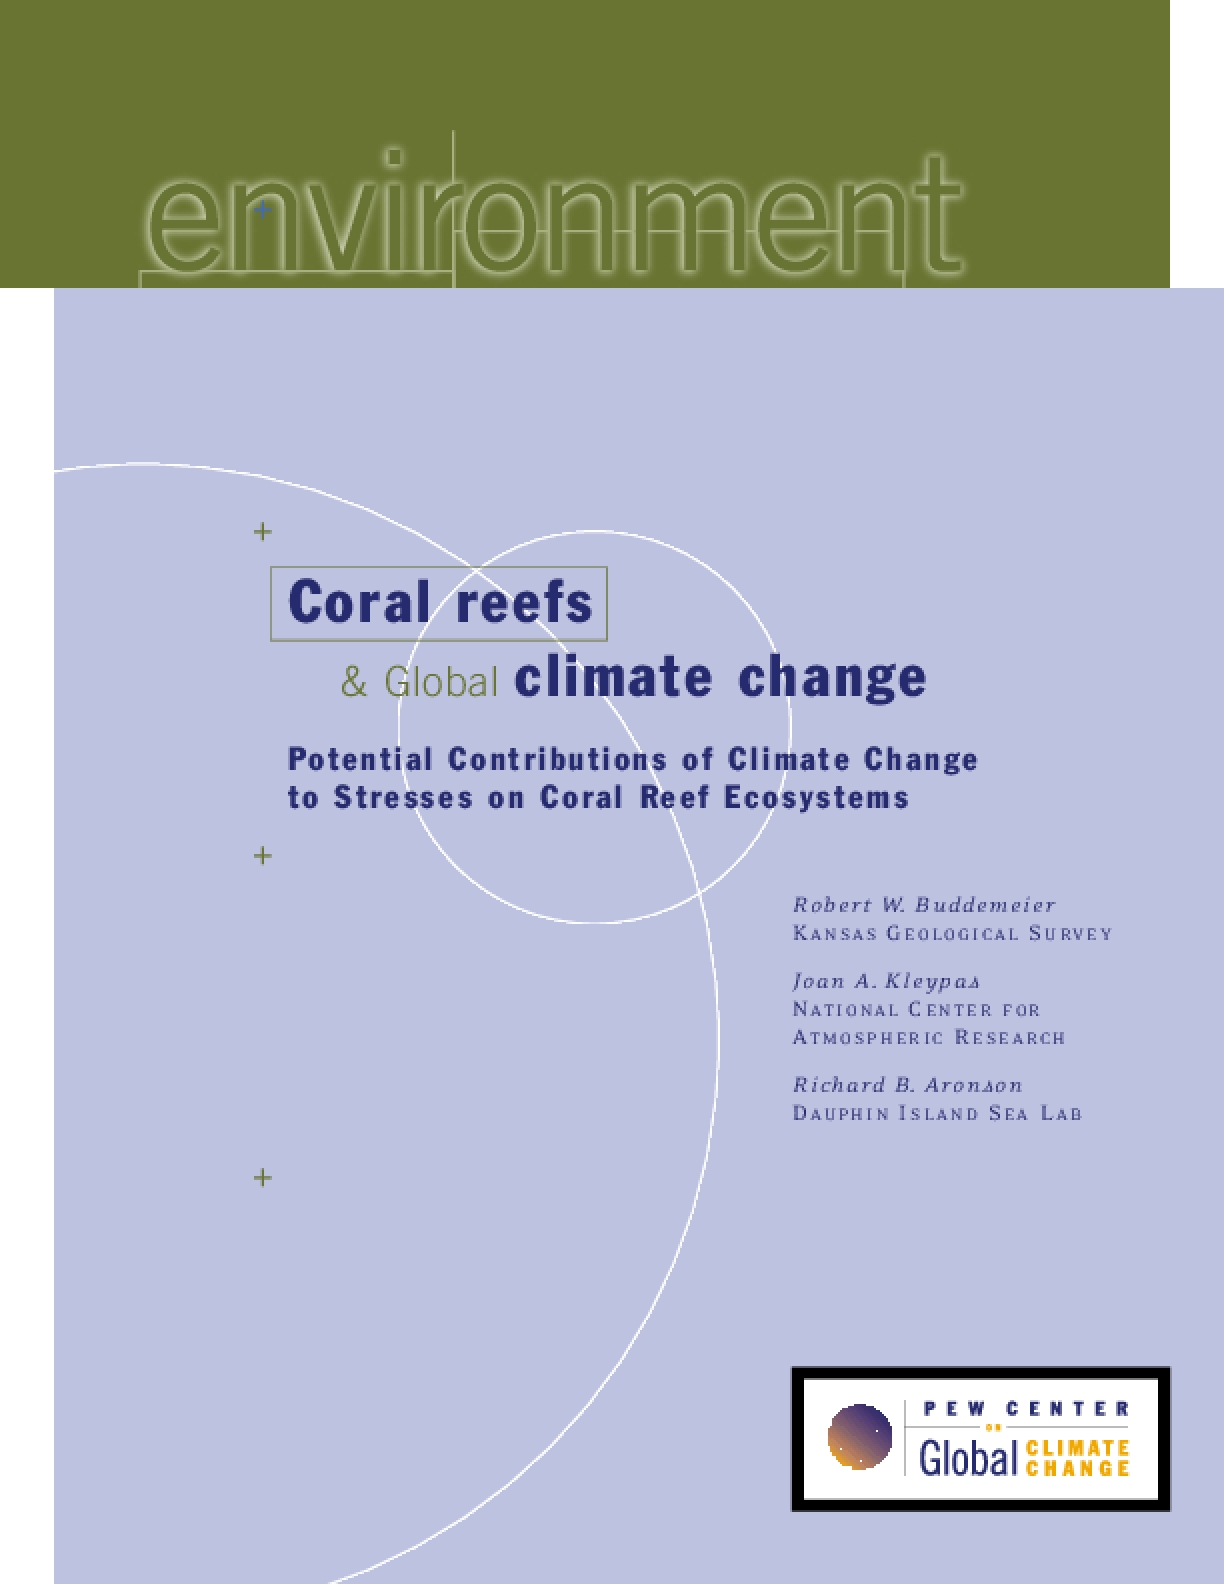 Coral Reefs & Global Climate Change: Potential Contributions of Climate Change to Stresses on Coral Reef Ecosystems